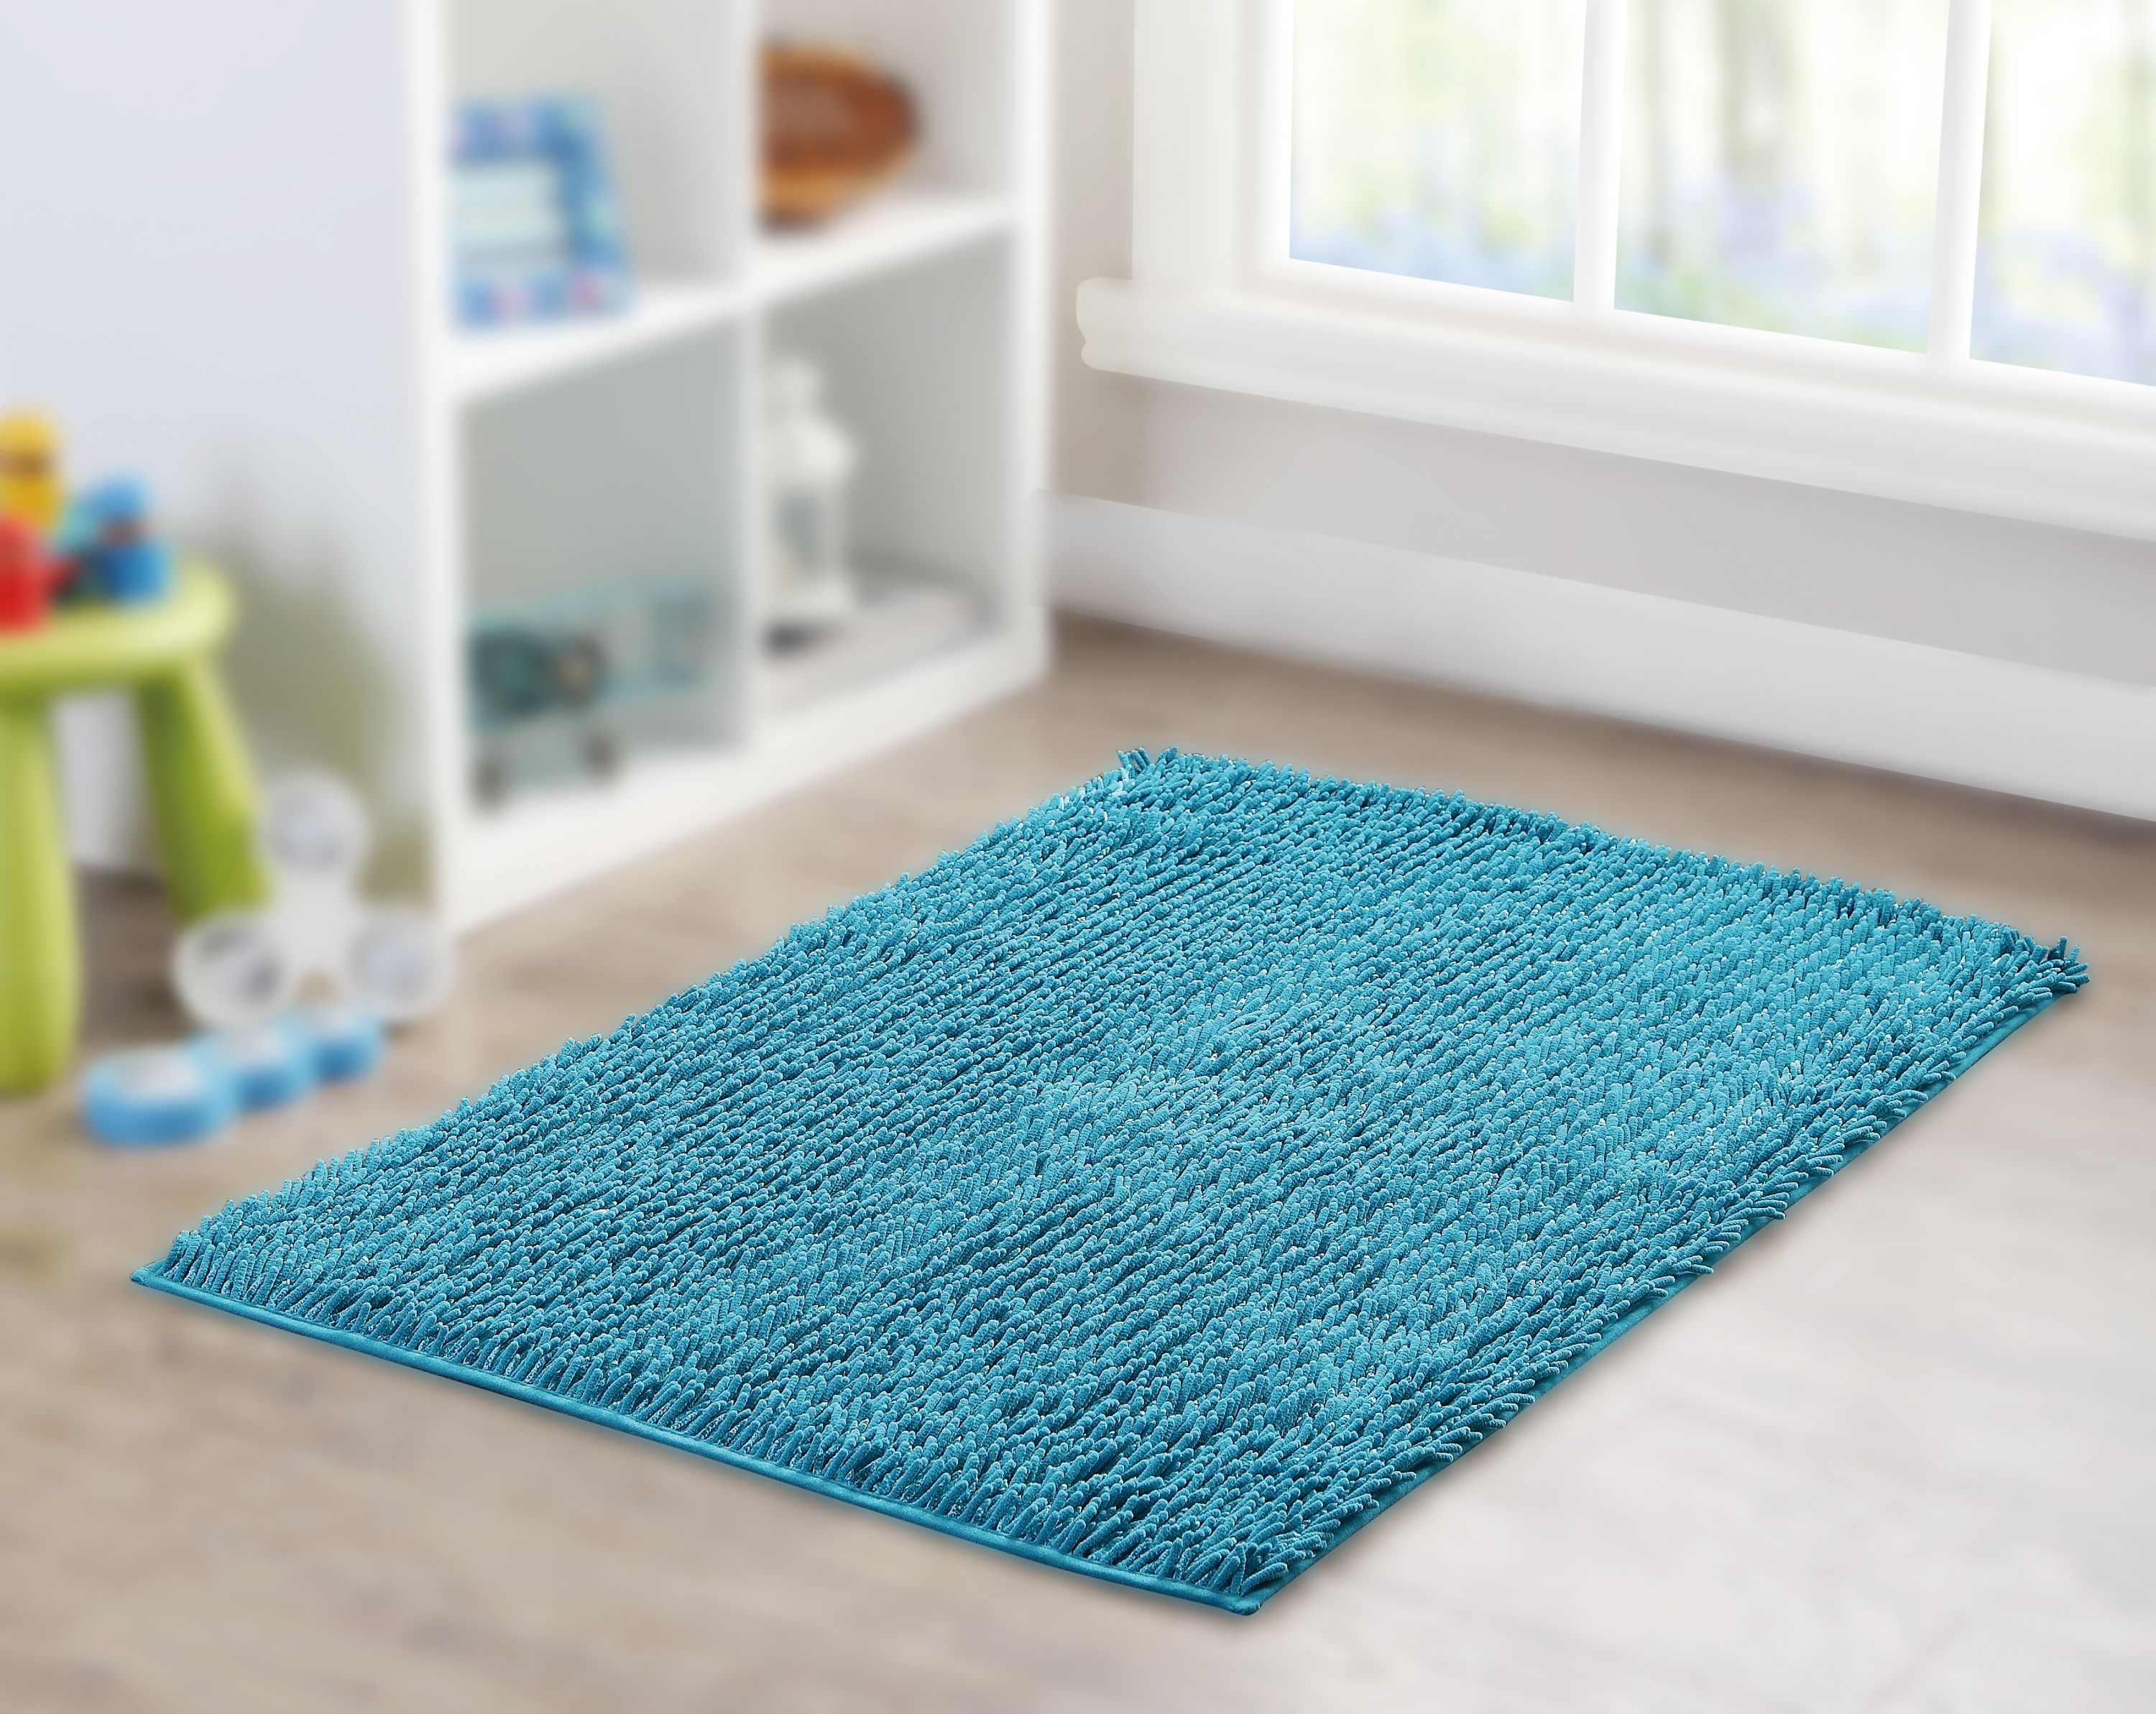 Your Zone Shiny Noodle Area Rug, Multiple Colors Available - Walmart.com